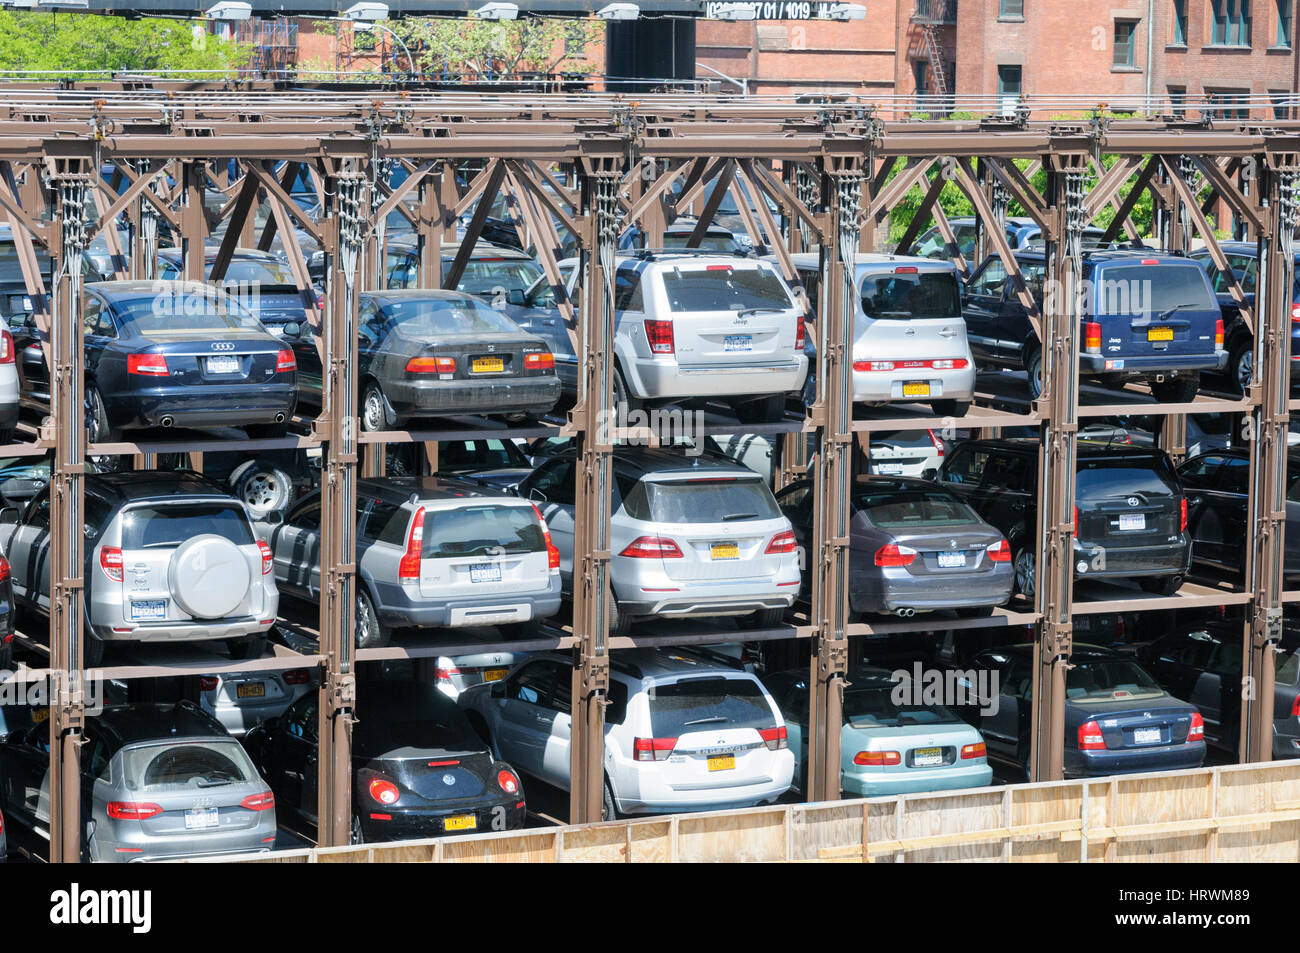 Car park stacked parking garage 10th avenue chelsea for New york city parking garage